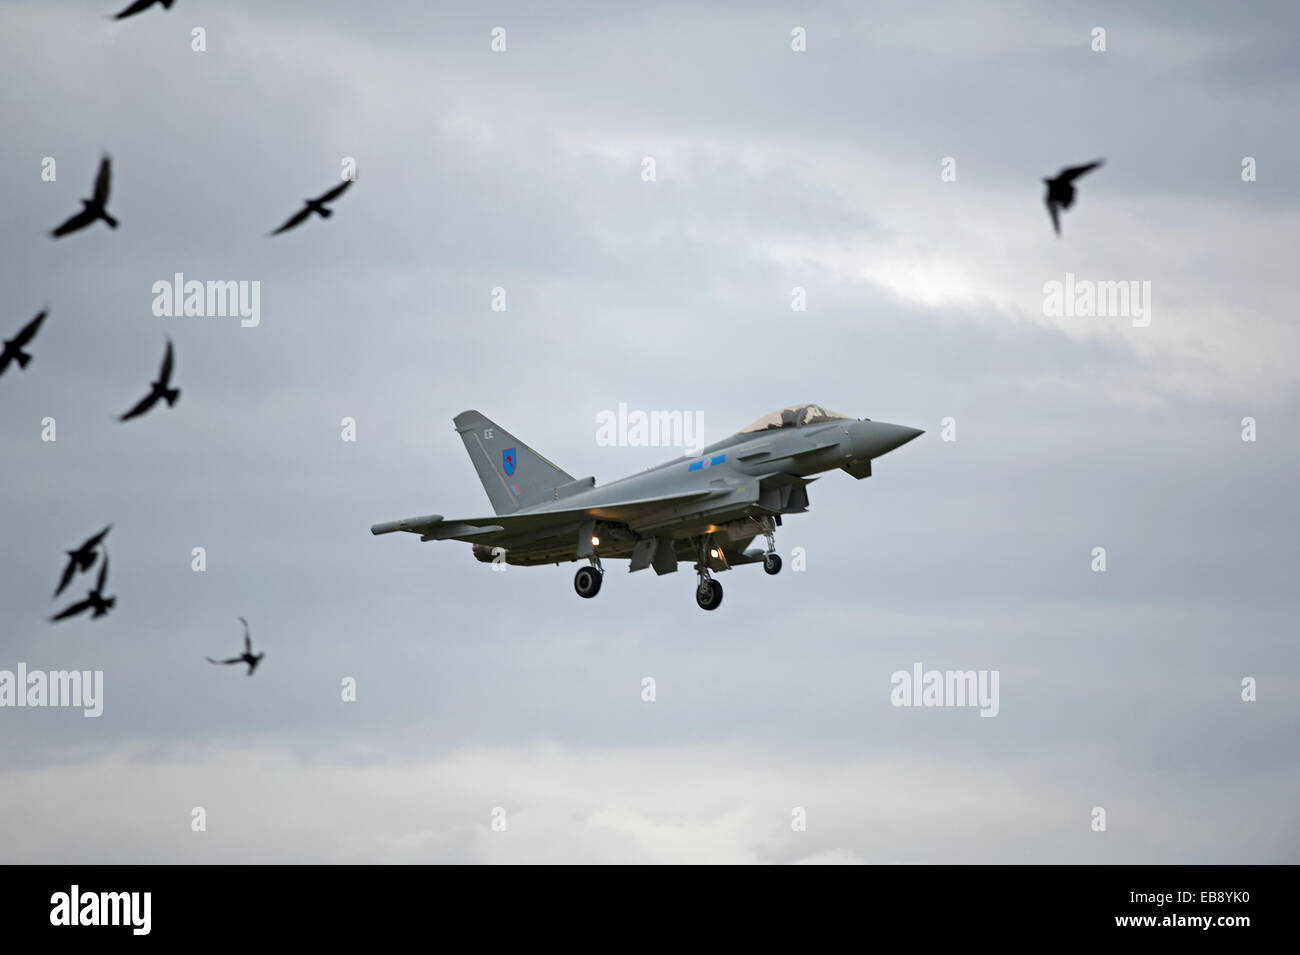 Eurofighter Typhoon FRG4 Military Jet Fighter avoiding bird strike on returning to base at RAF Lossiemouth.  SCO - Stock Image